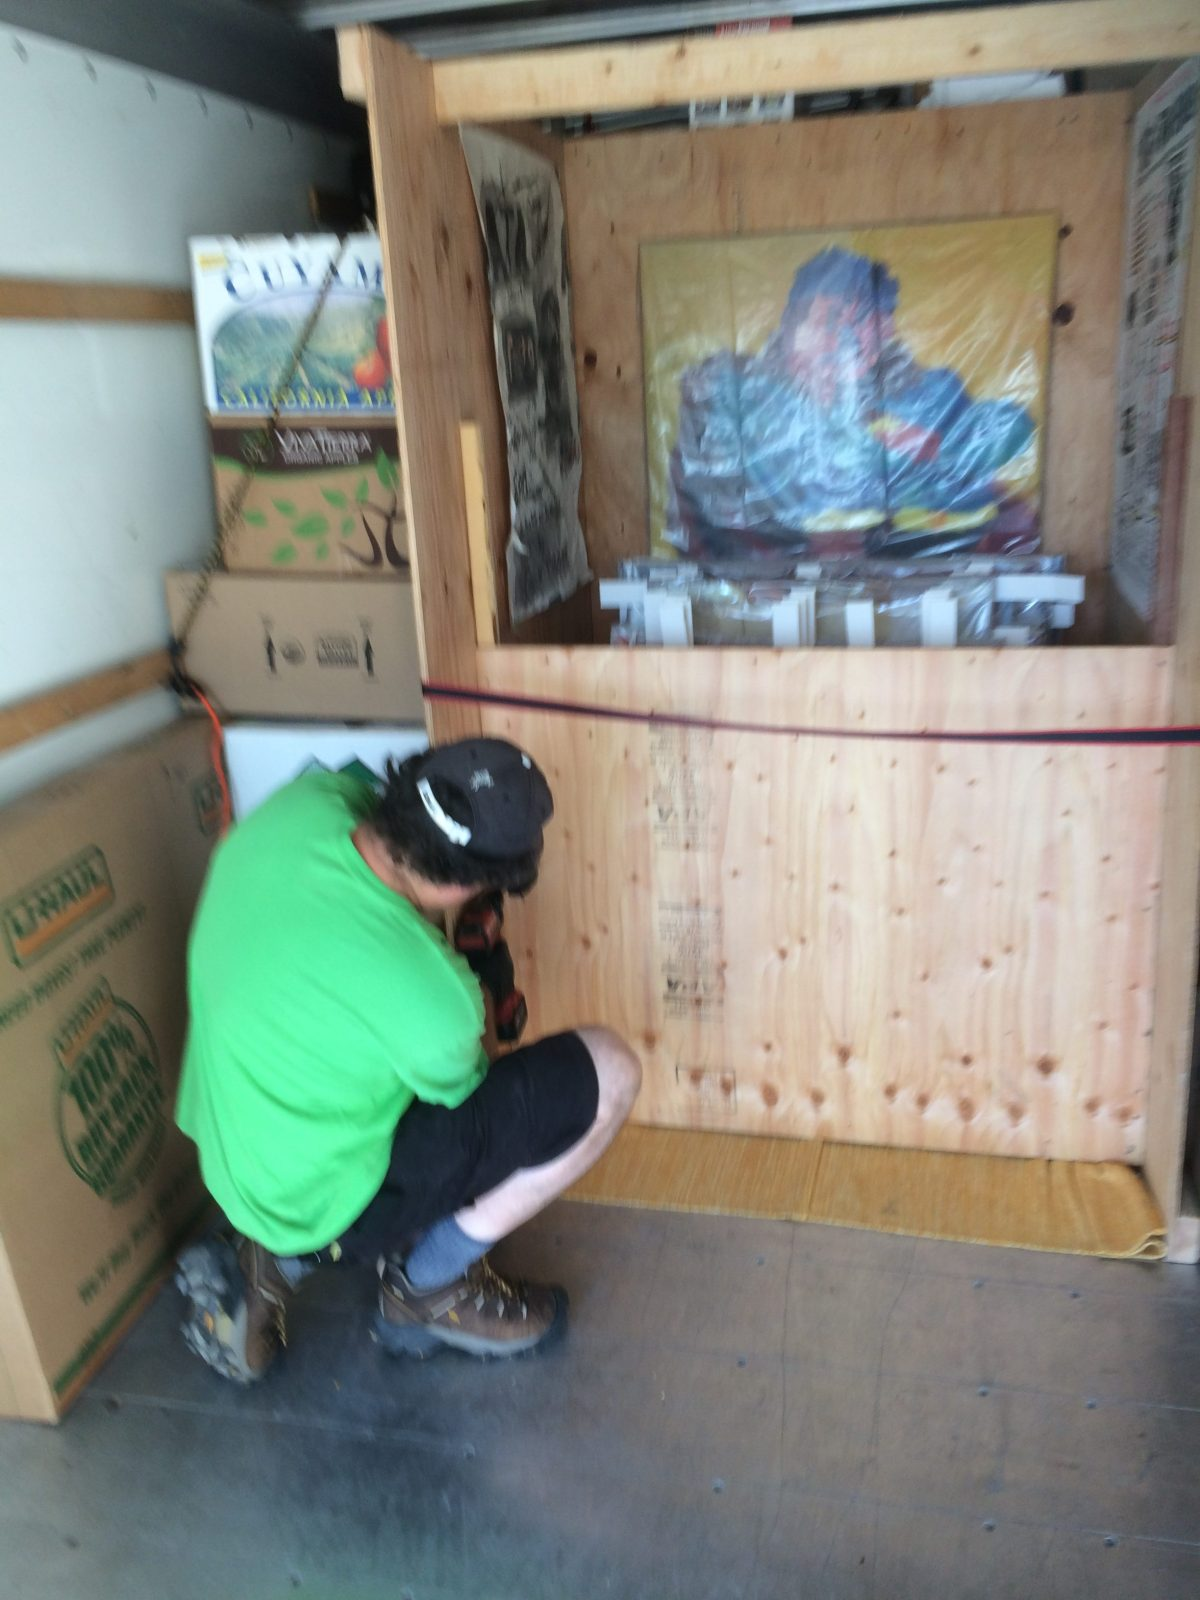 Alexi opening up the paintings' box